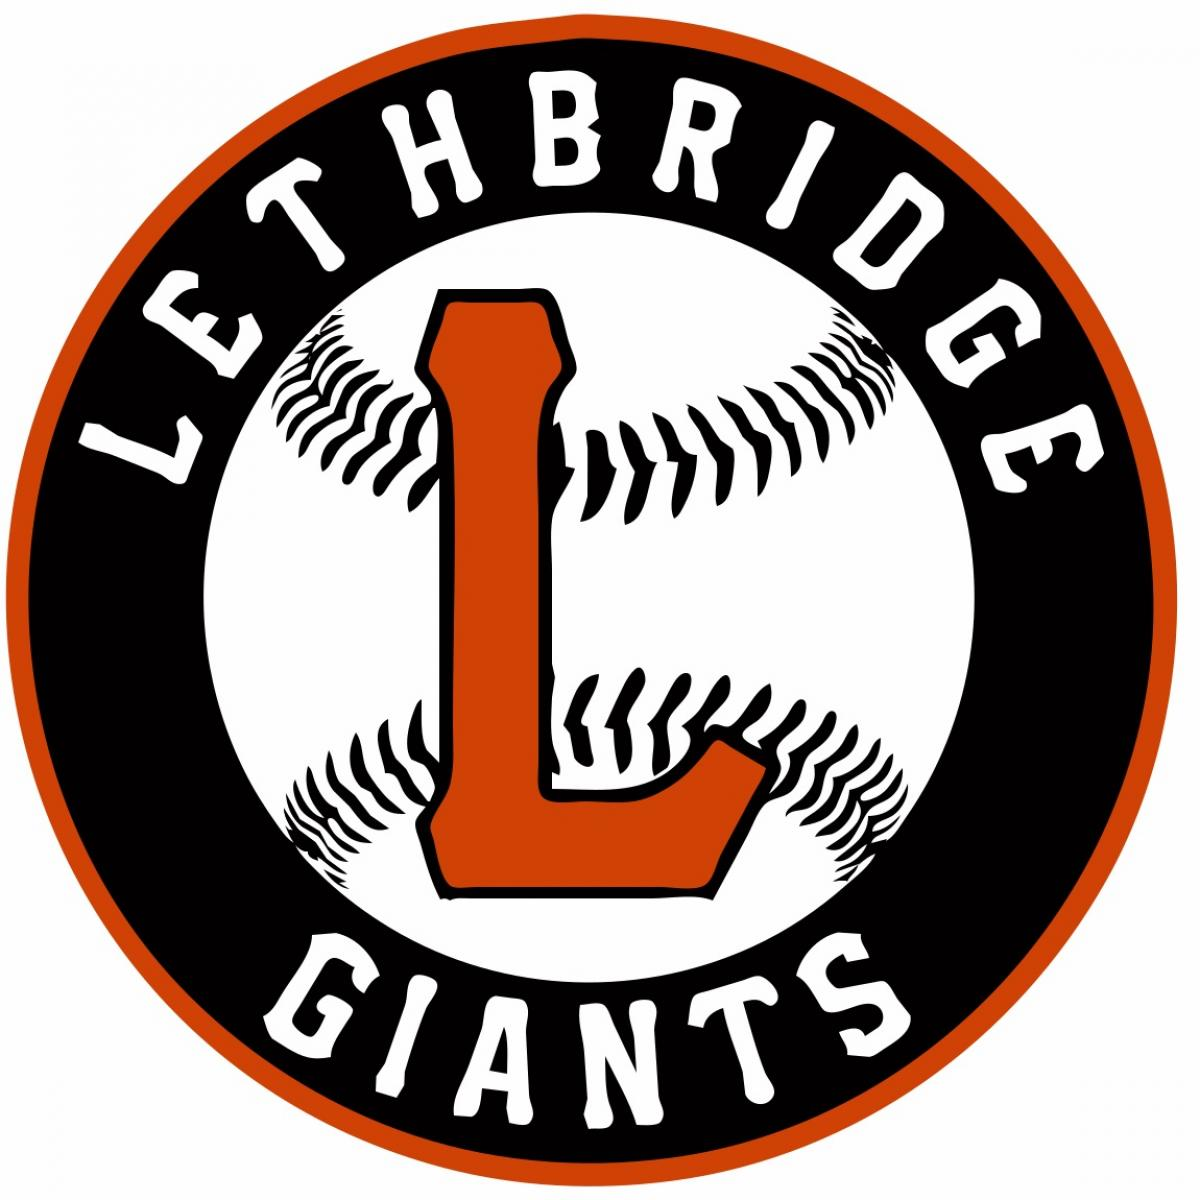 Big League Giants win provincials